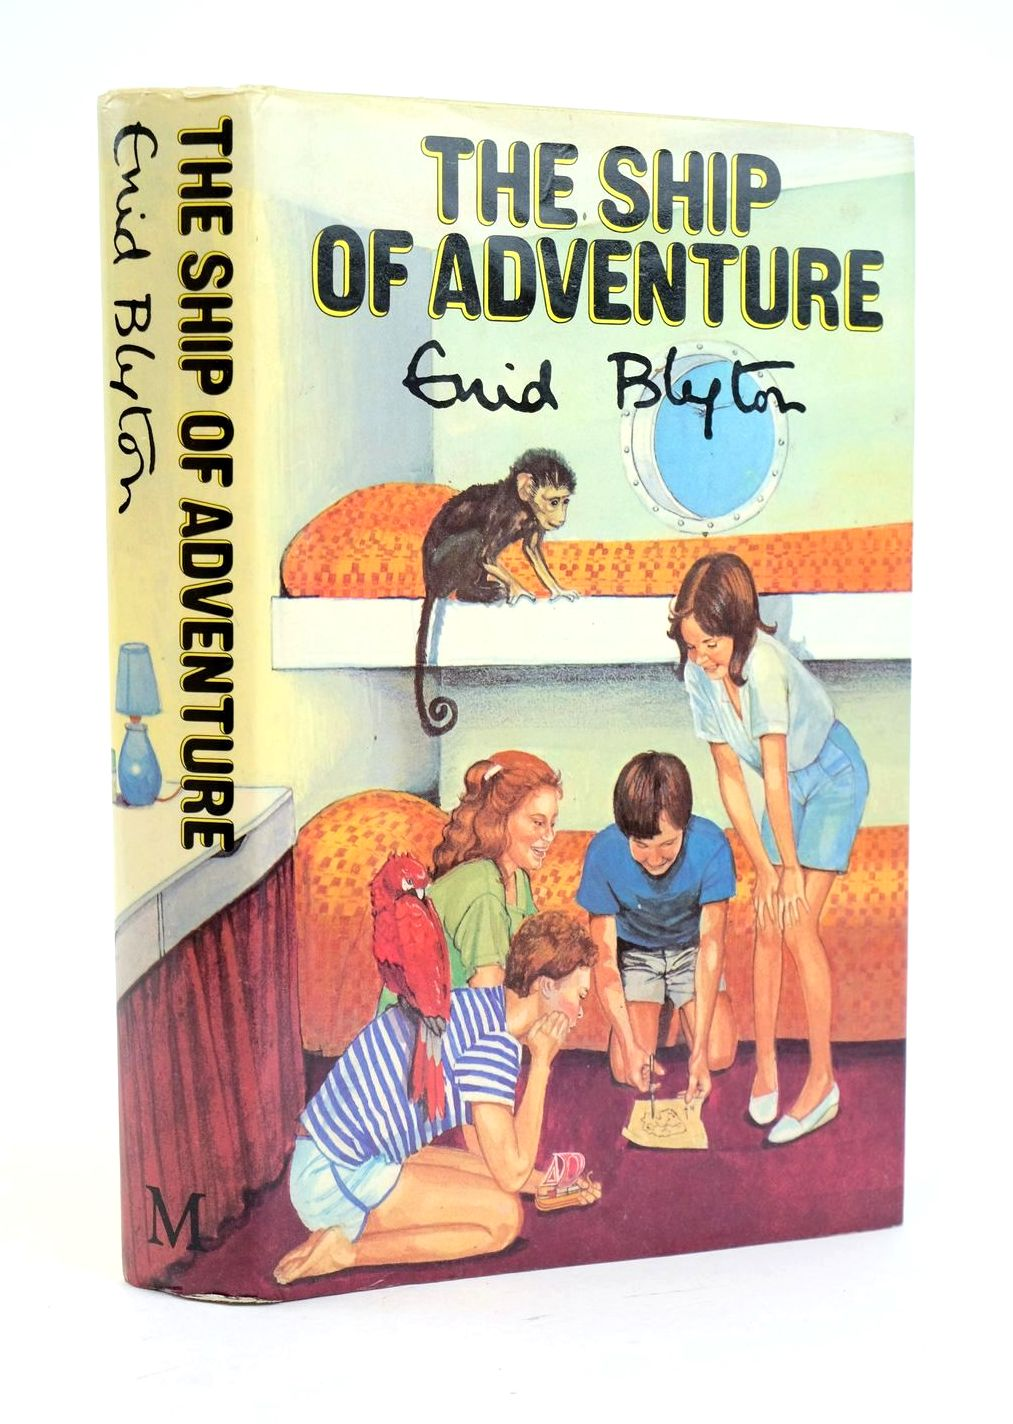 Photo of THE SHIP OF ADVENTURE written by Blyton, Enid illustrated by Tresilian, Stuart published by Macmillan & Co. Ltd. (STOCK CODE: 1319118)  for sale by Stella & Rose's Books